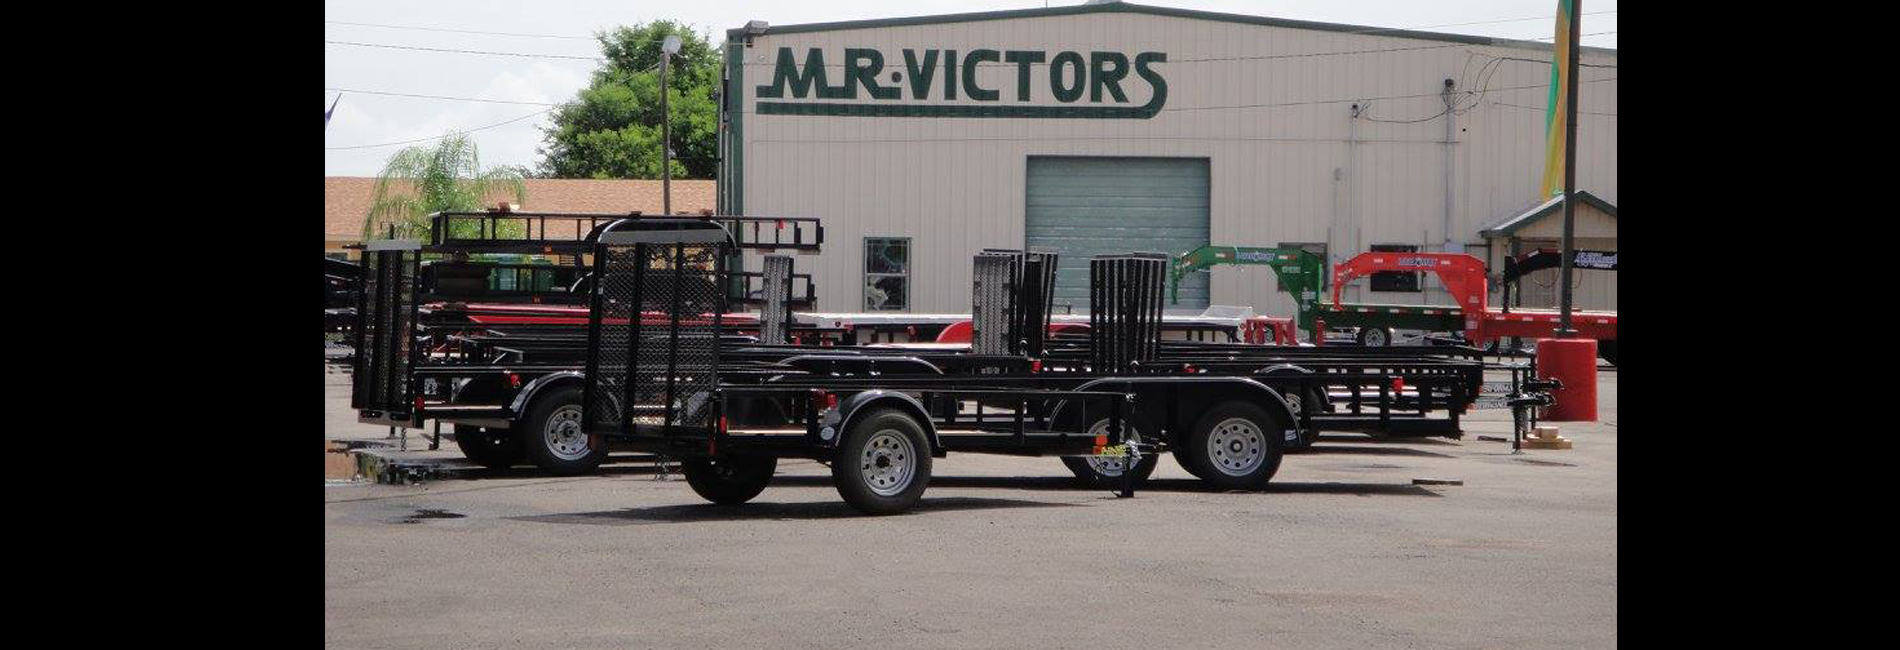 Home | Cargo Trailer, Gooseneck flatbed and Utility Trailer Sales ...